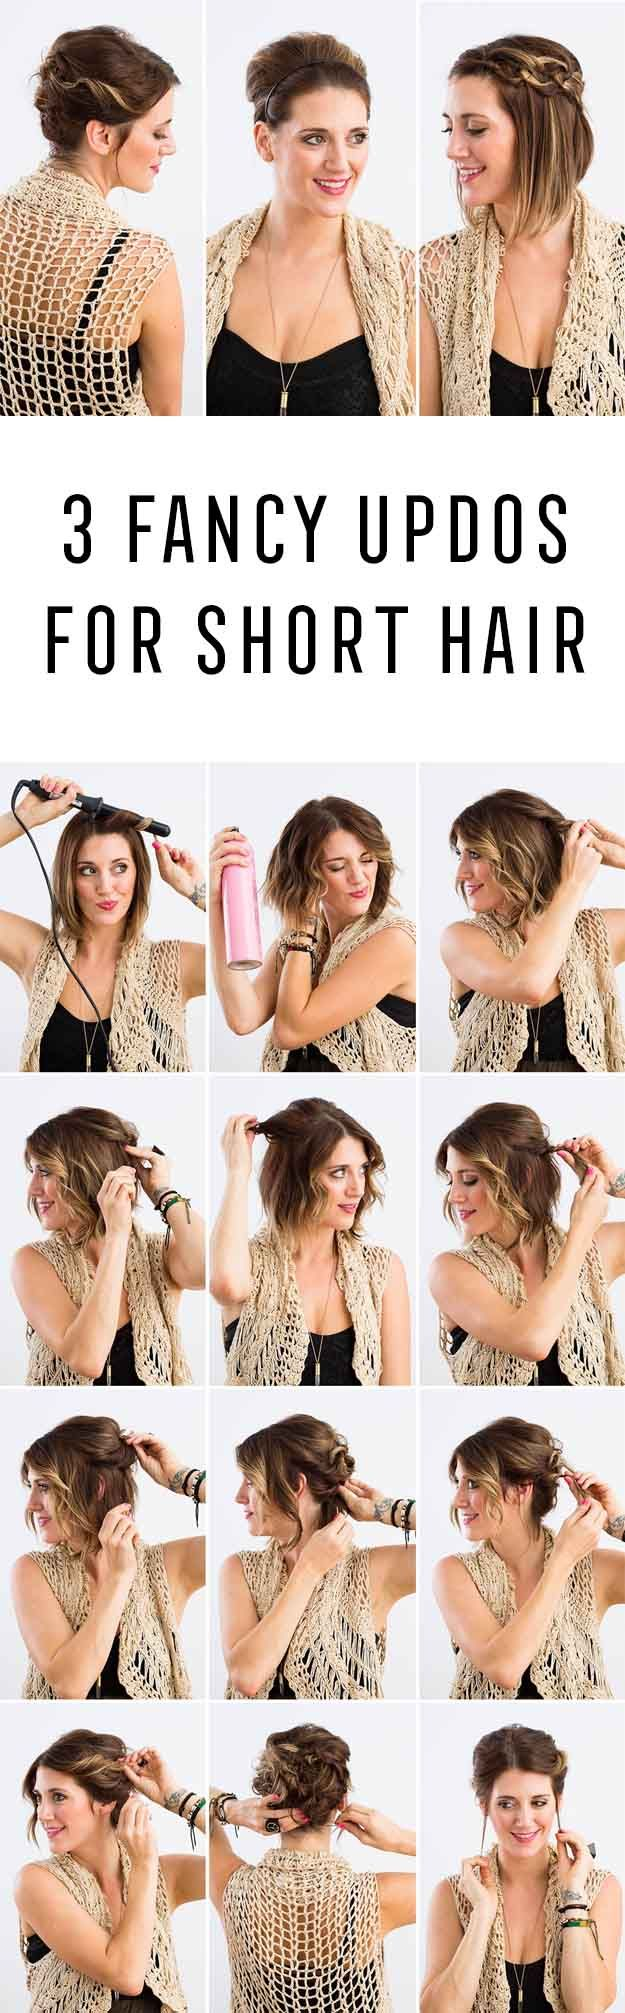 Short Hair Styles You Can Do In 10 Minutes or Less - 3 Fancy Updos for Short Hai...